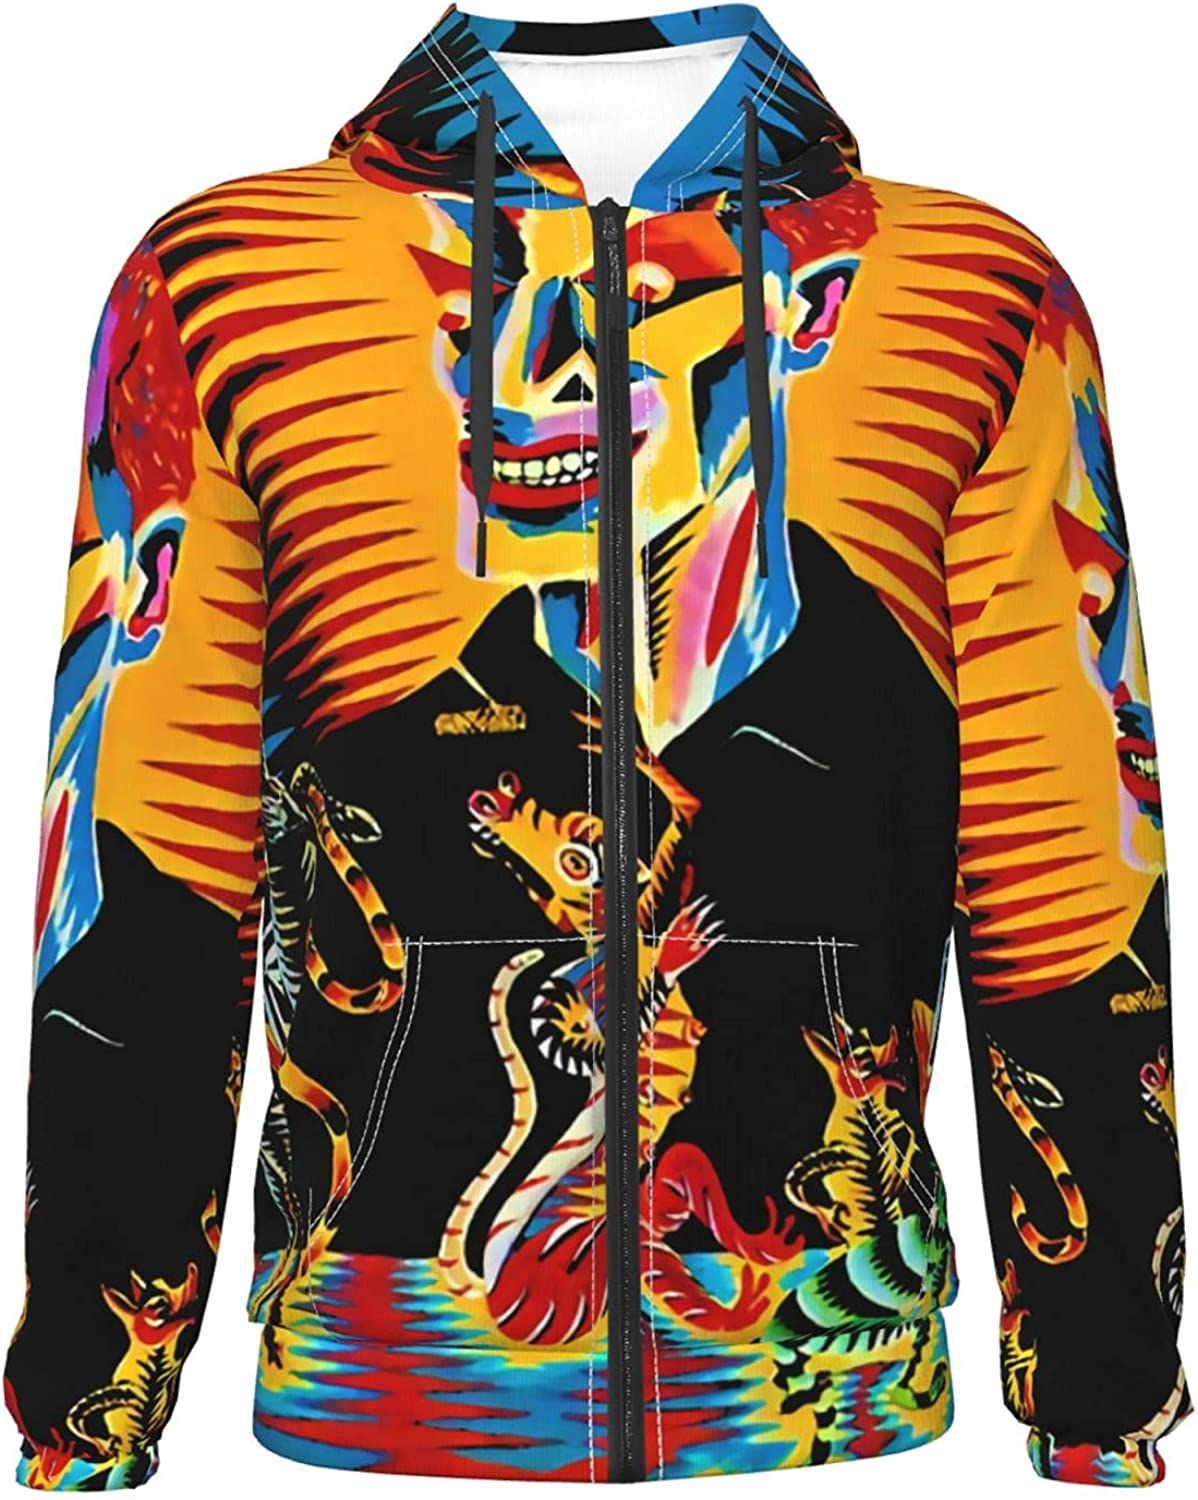 Oingo Boingo Fashion Teenager Zipper Pul Fort Cheap super special price Worth Mall Coat Jacket Warm Hoodie